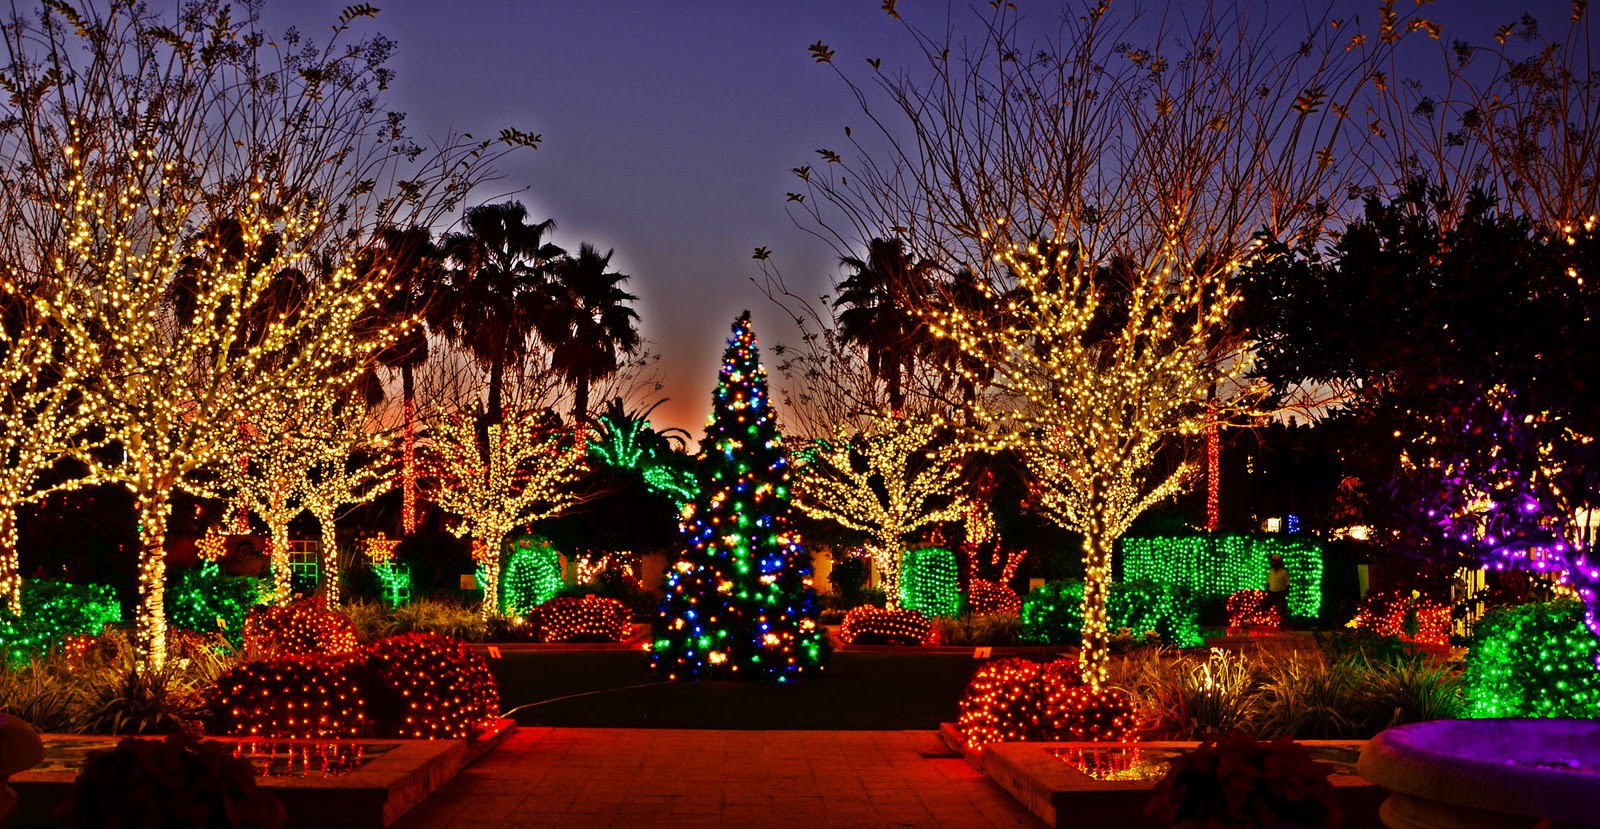 Immortal Fitness: 15 places to see Christmas lights in the Tampa Bay area